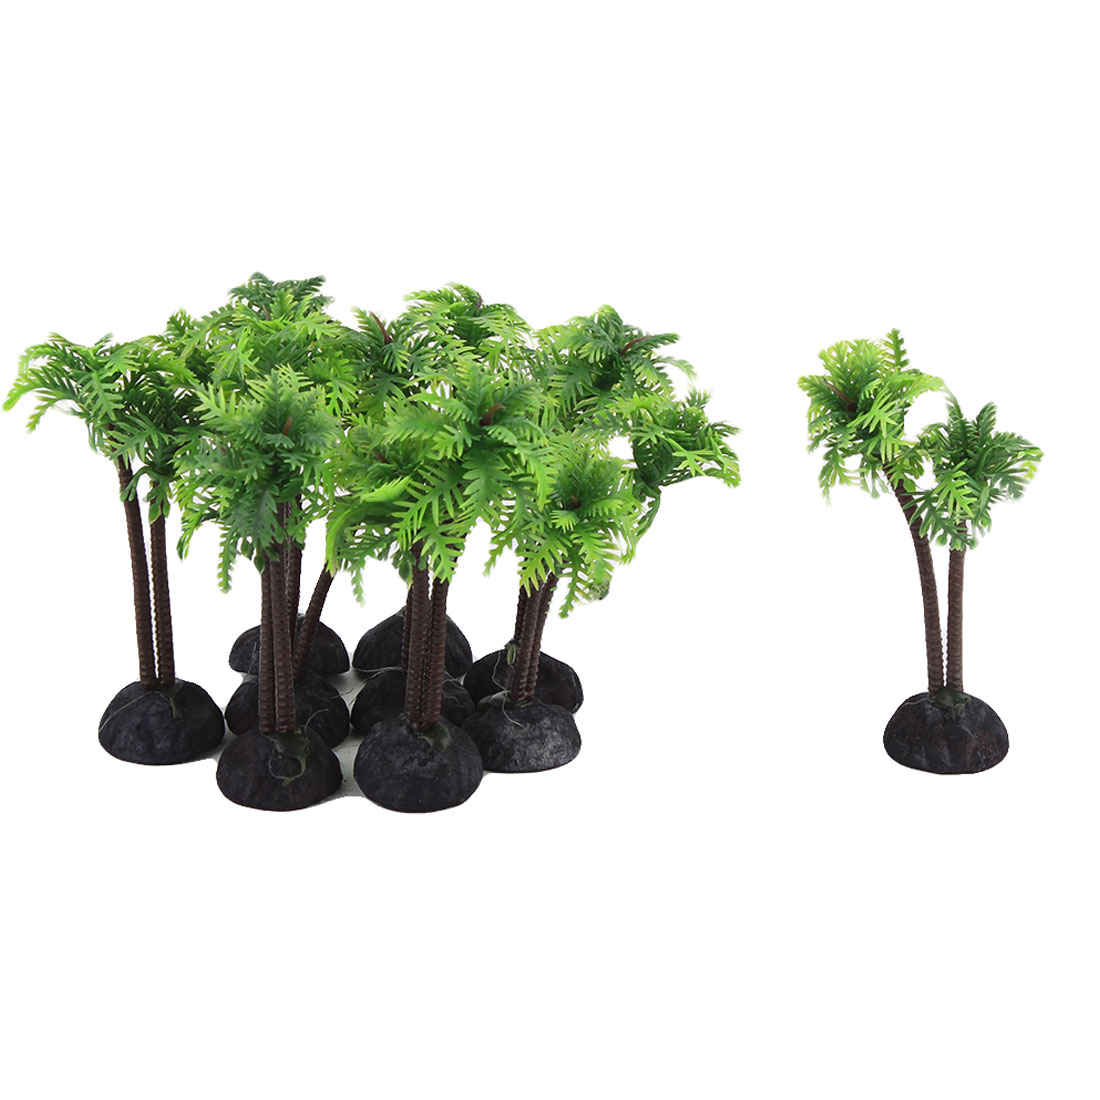 Garden Pond Aquarium Fish Tank Coconut Palm Decor Handmade Plant Green 10pcs